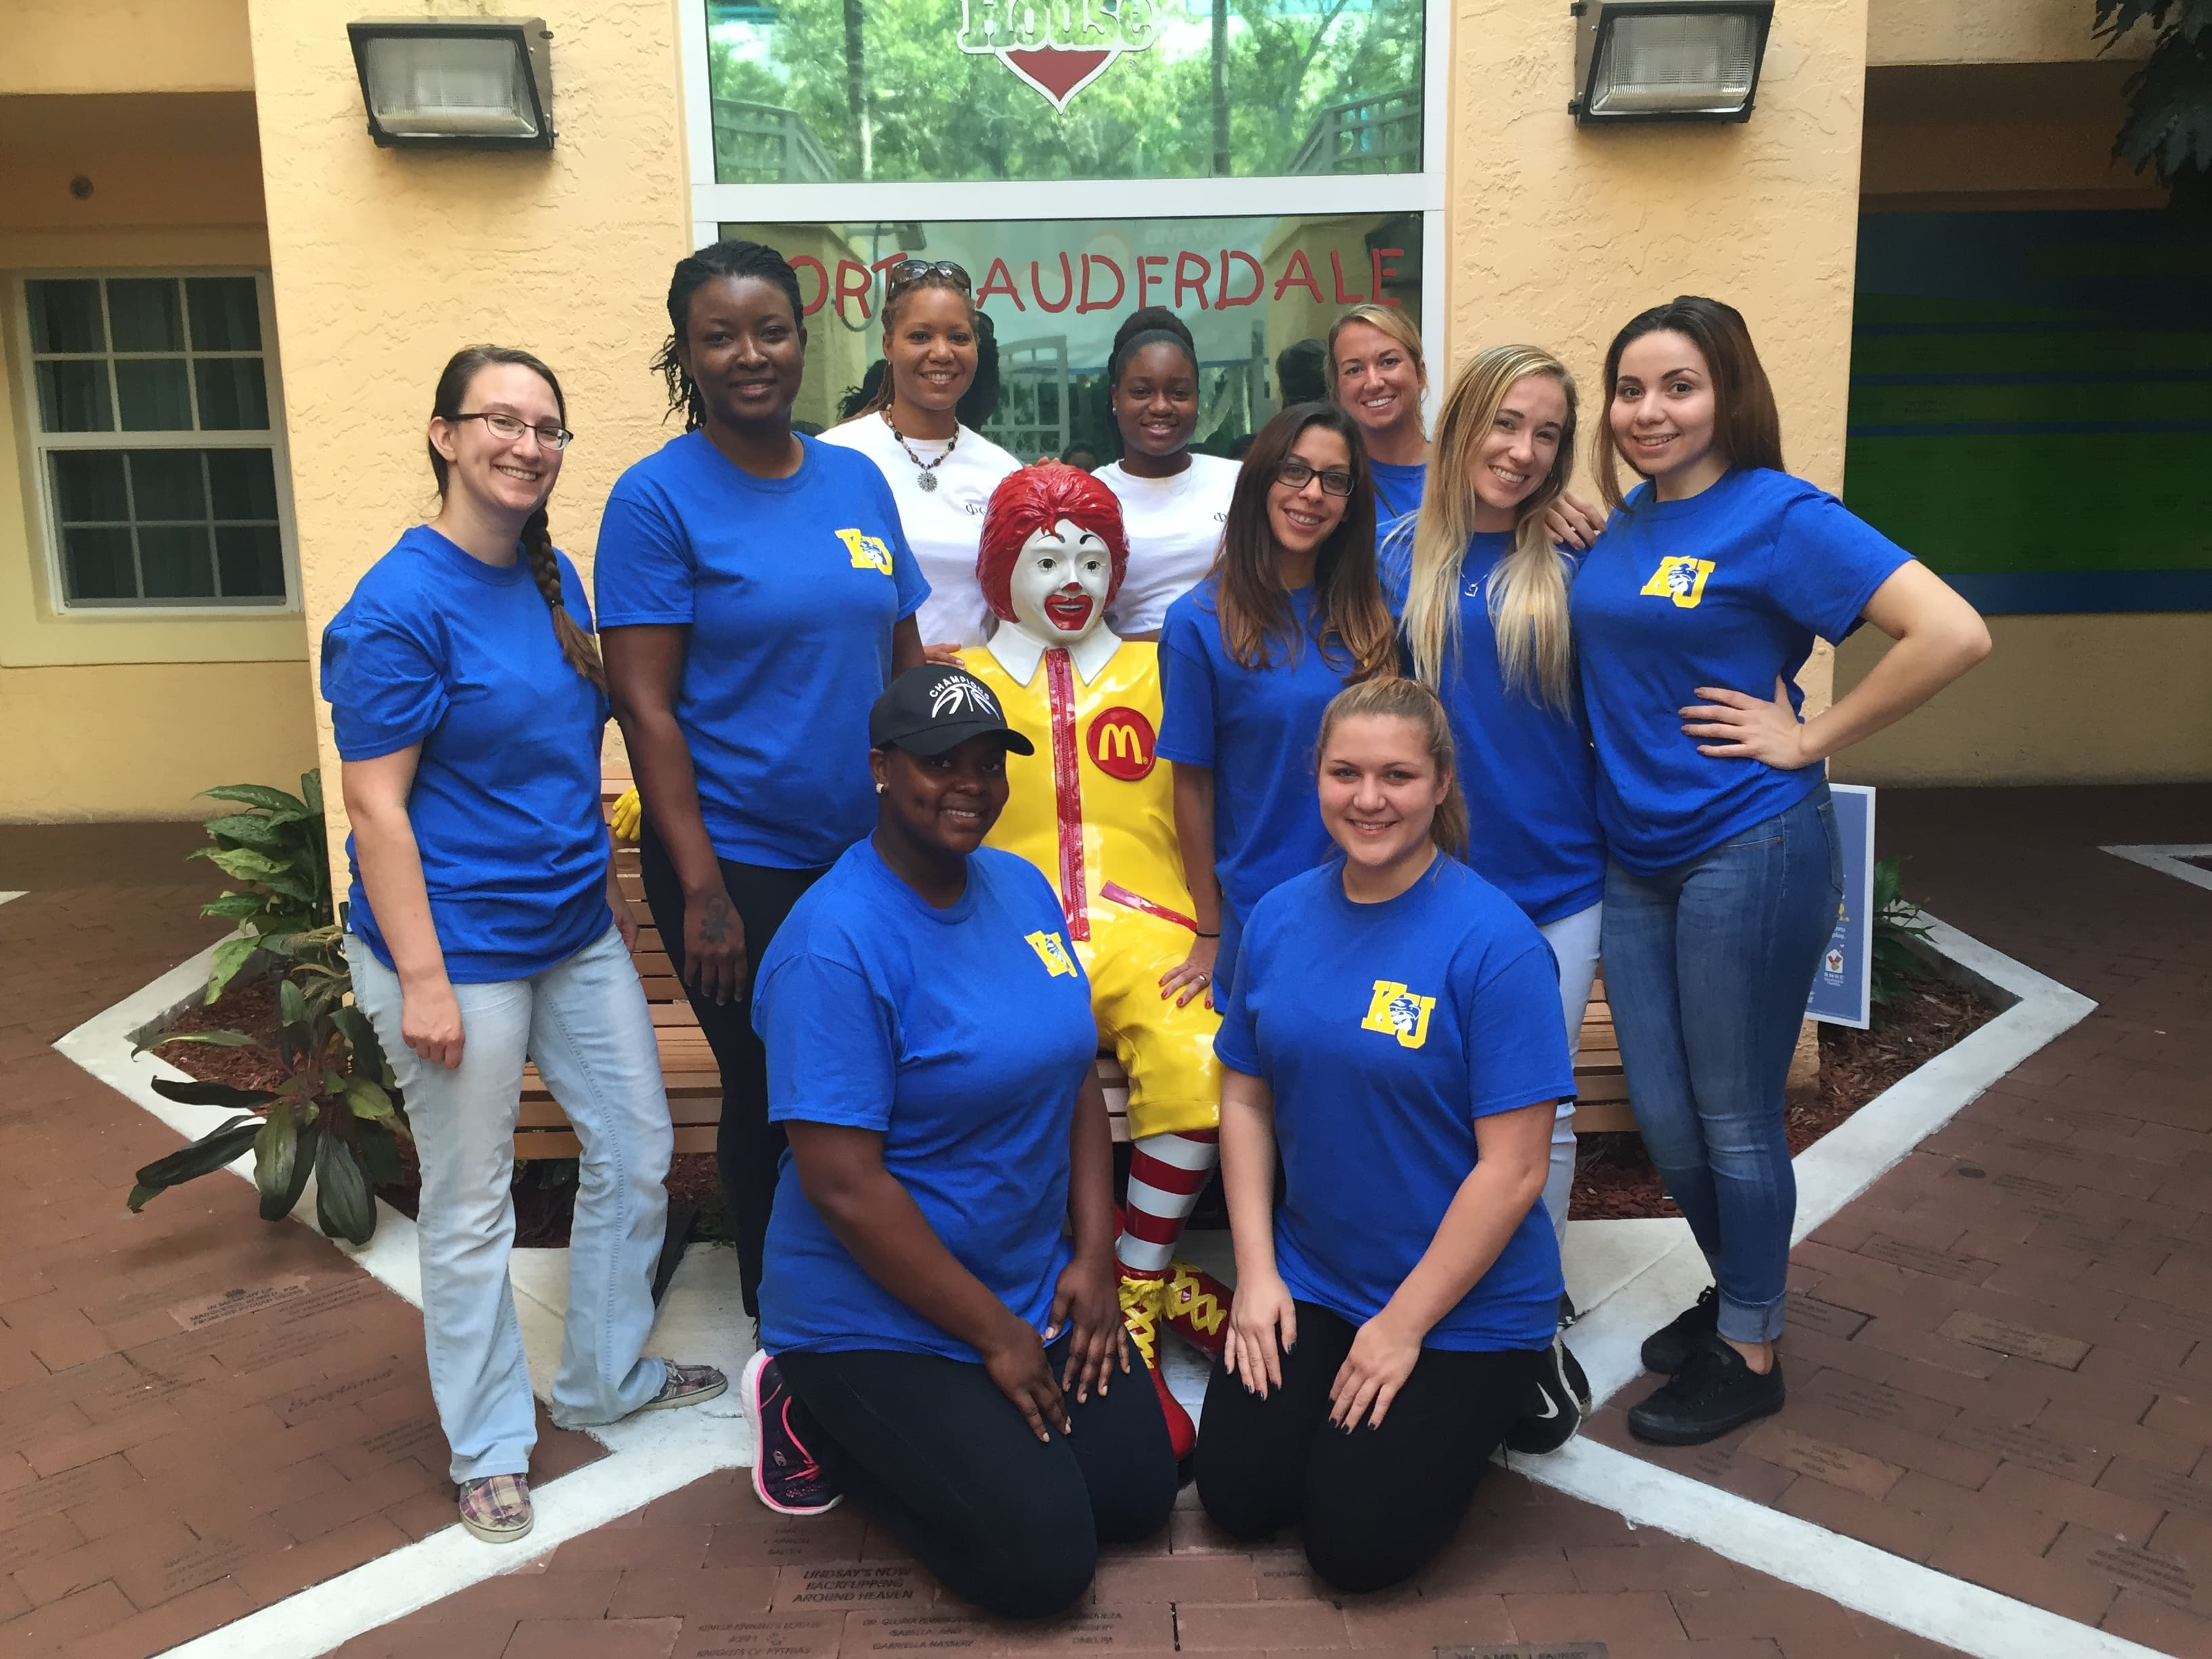 Ft. Lauderdale Students Volunteer at Ronald McDonald House